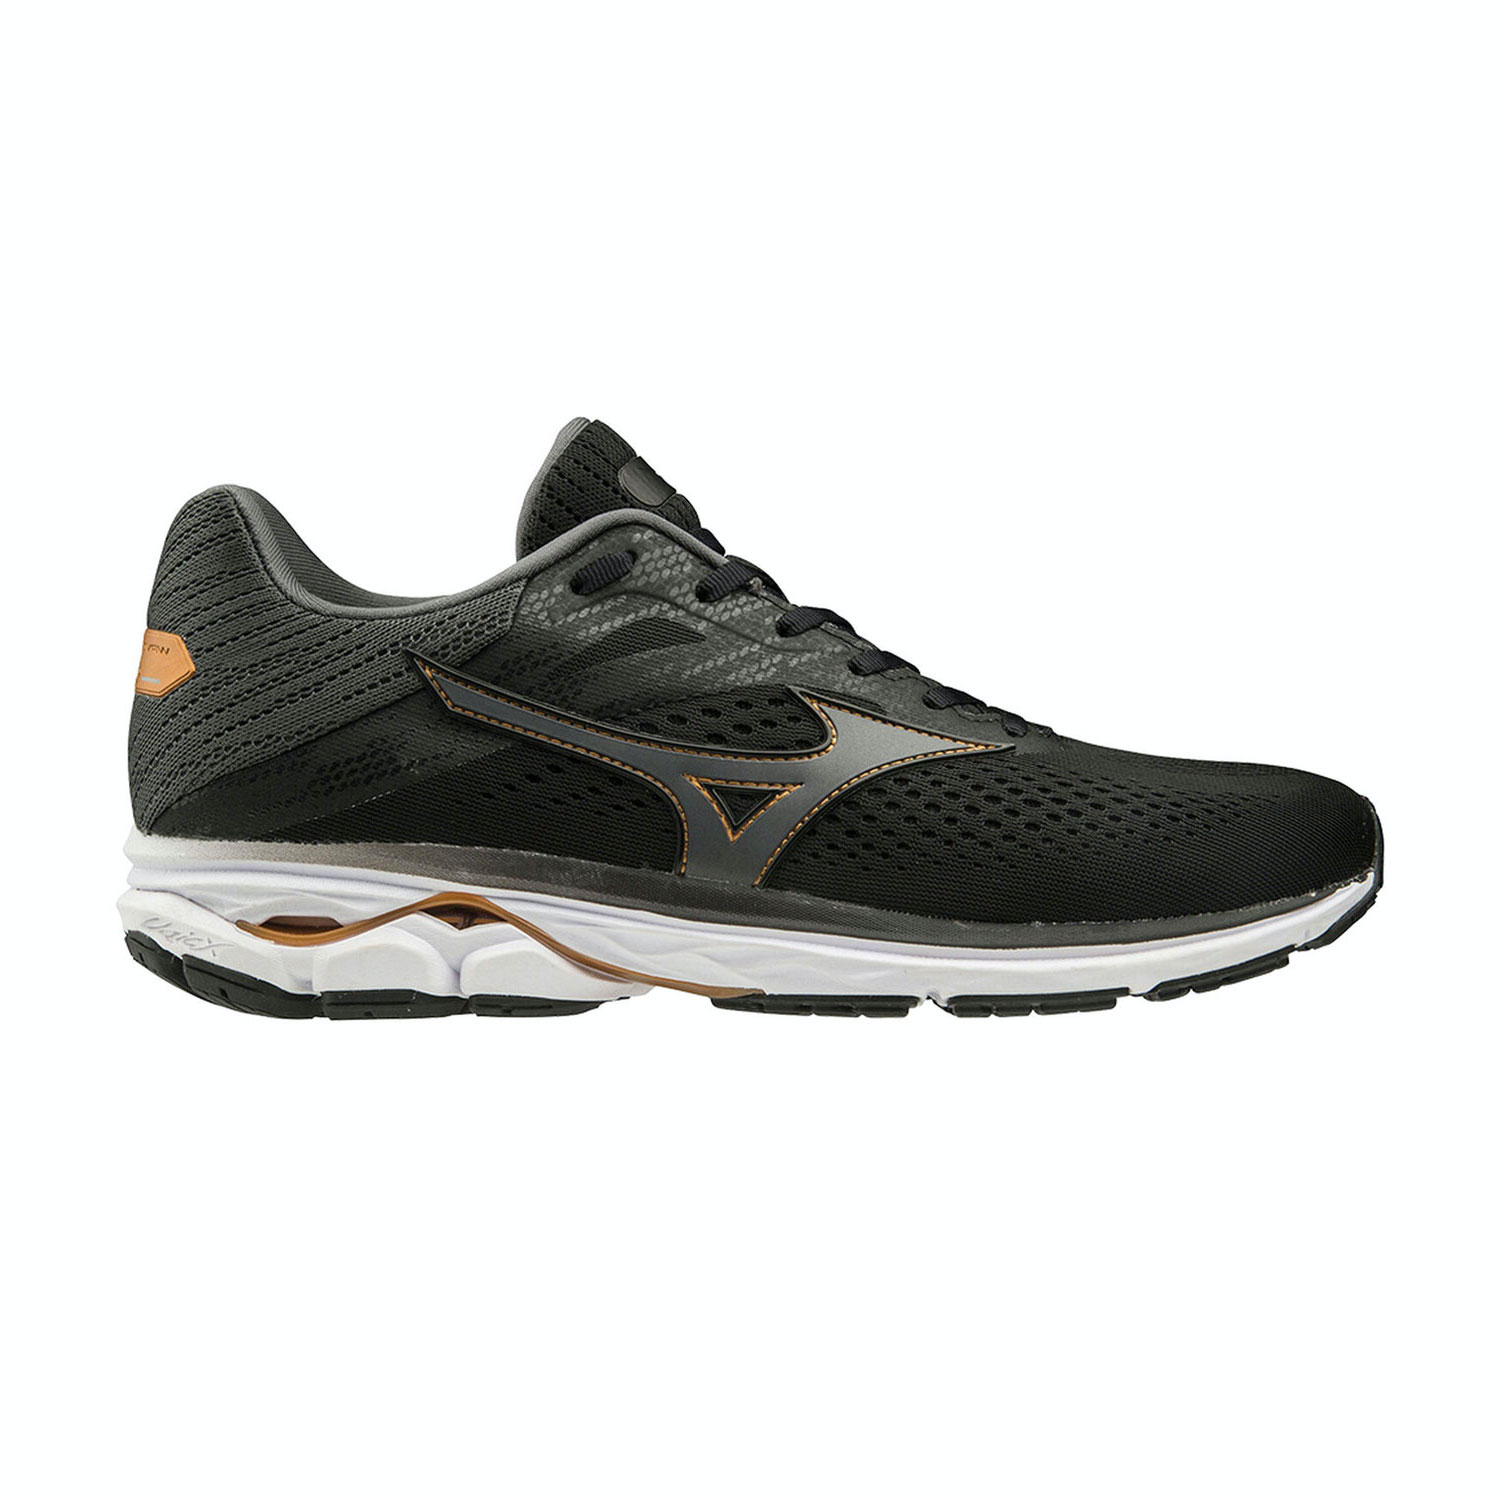 Mizuno Wave Rider 23 BlackDark Shadow